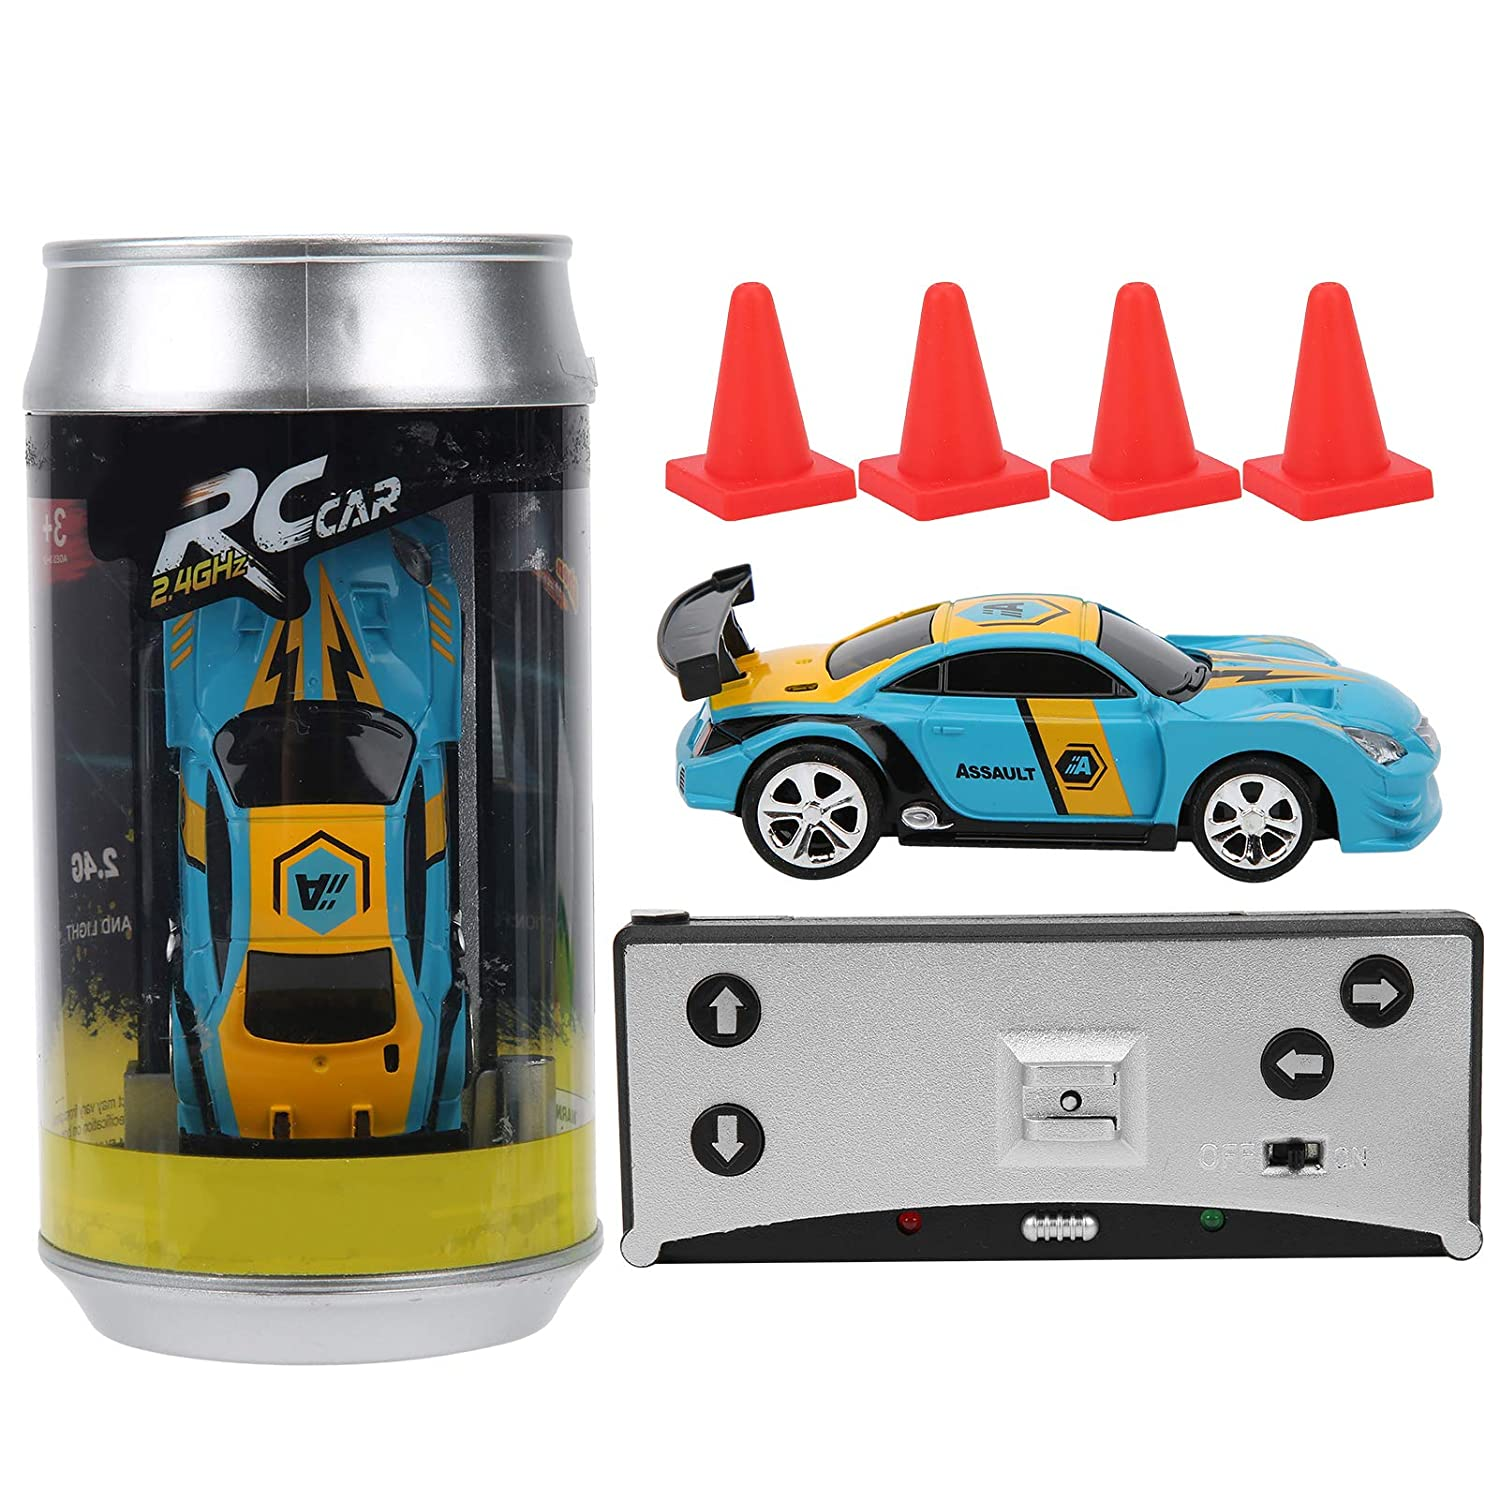 Racing RC We OFFer at cheap prices Car Fun Fashion Toy Durable Remote for To Special price Control